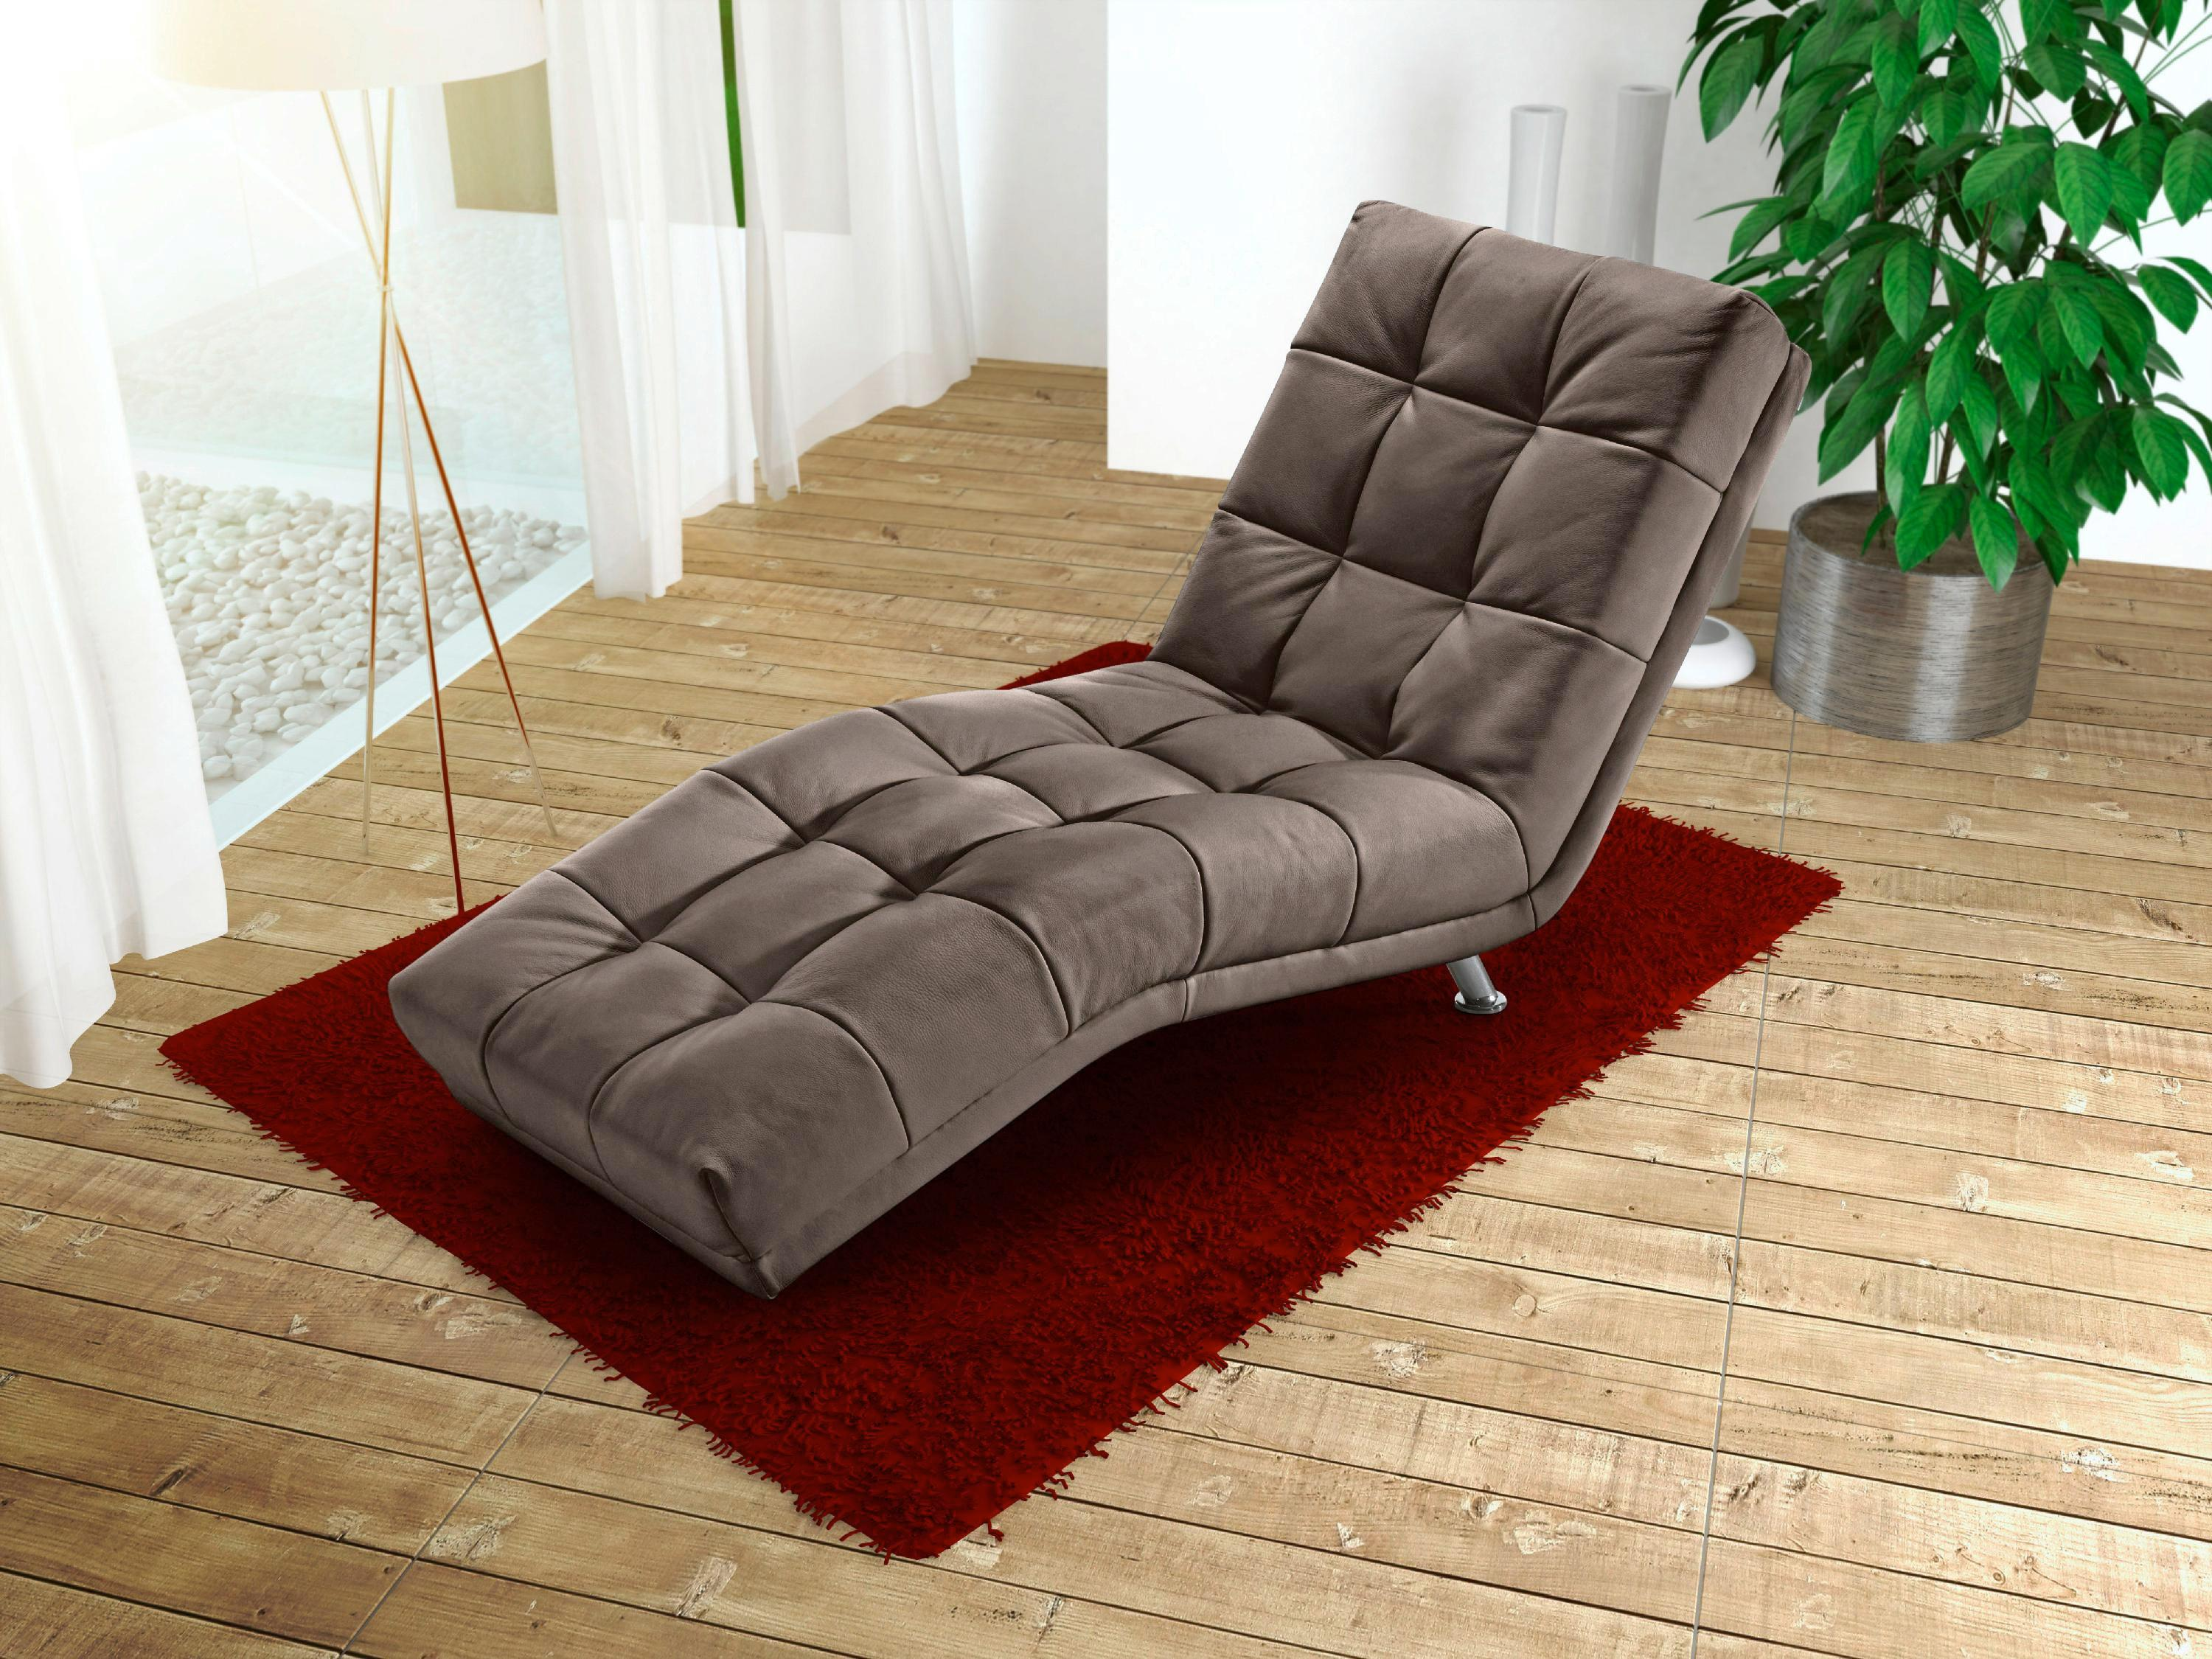 liege sofa excellent full size of sofa kleines zweisitzer. Black Bedroom Furniture Sets. Home Design Ideas